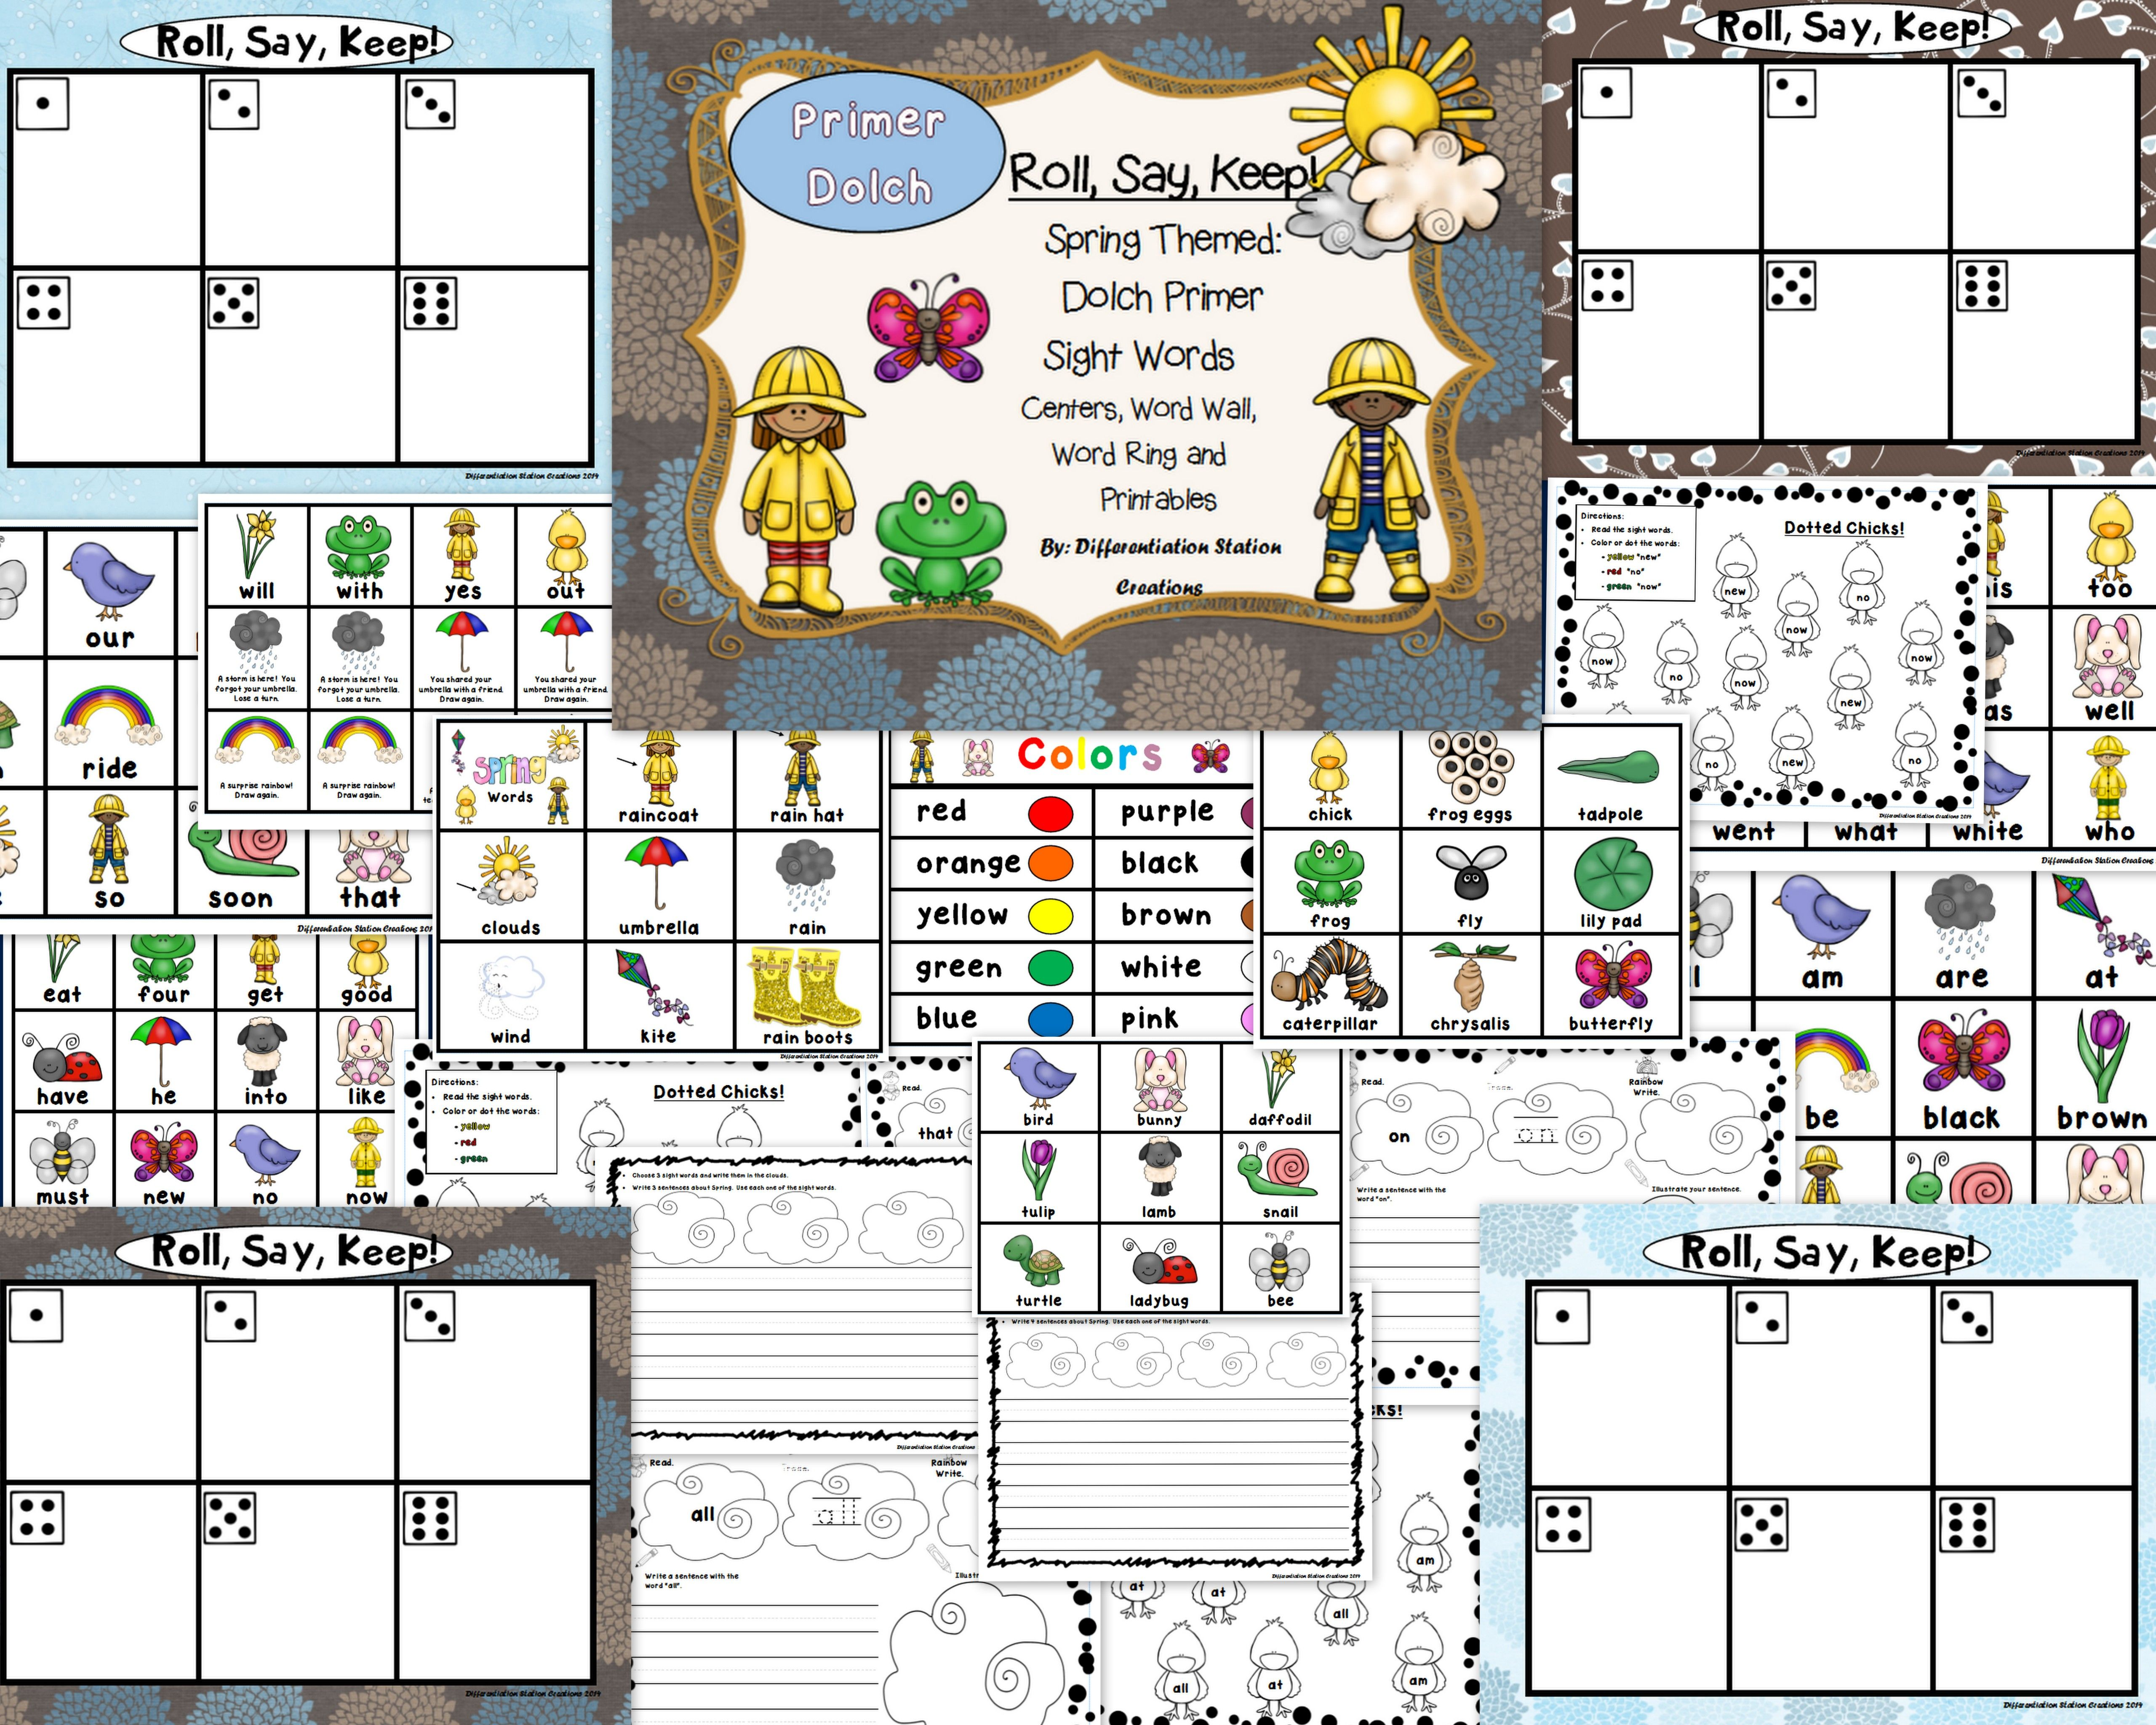 Spring Roll Say Keep Primer Dolch Sight Word Center